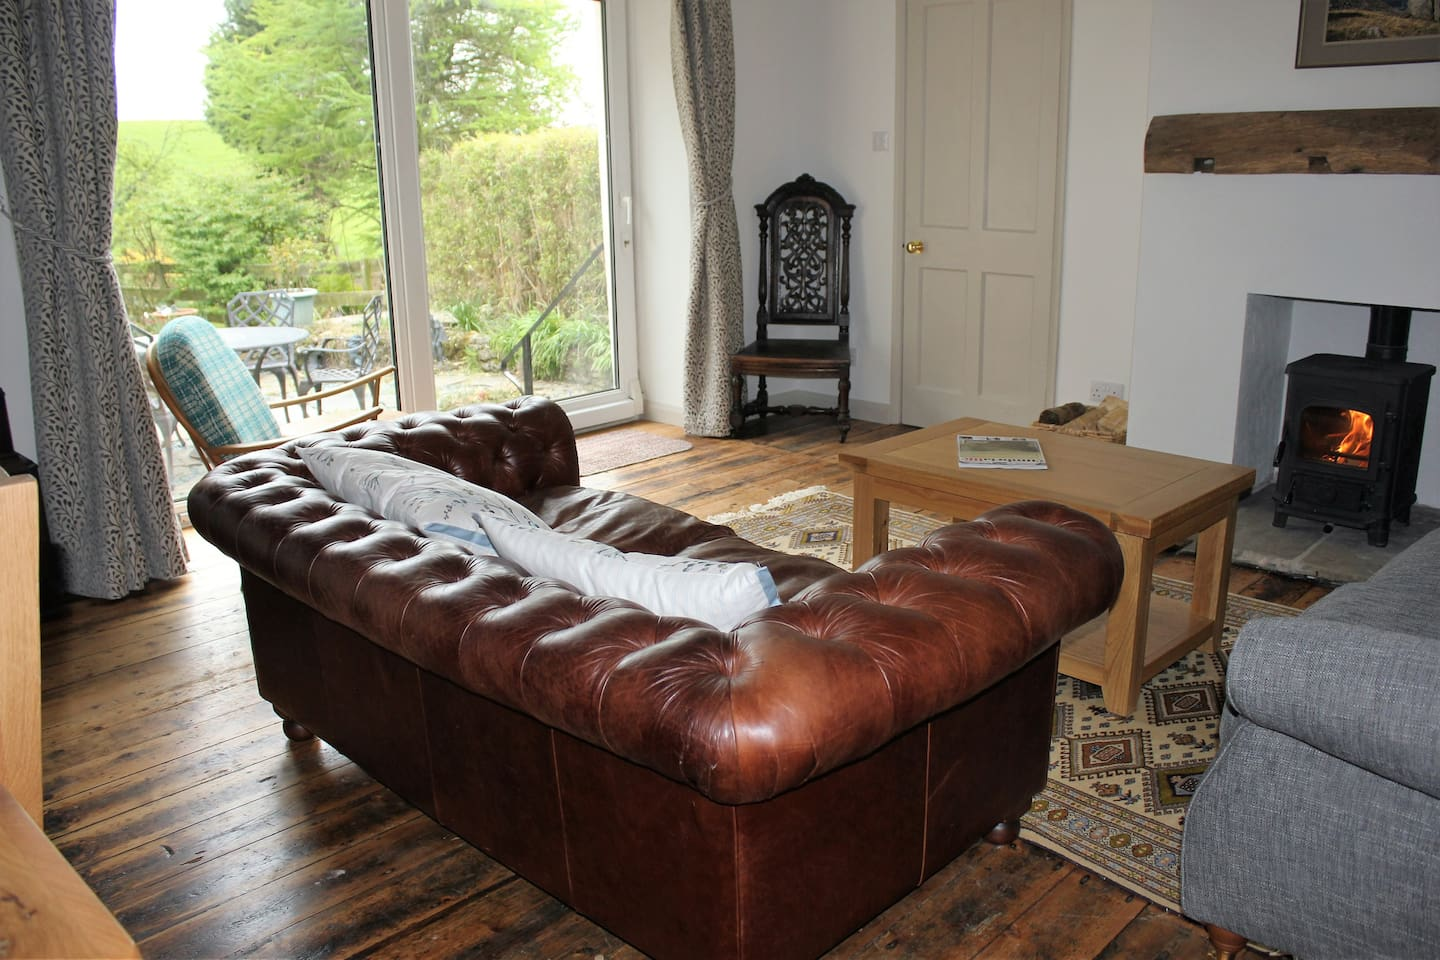 Beautiful cosy living room with patio doors to the garden. Oak beams, original wooden floor. Peace and tranquility.